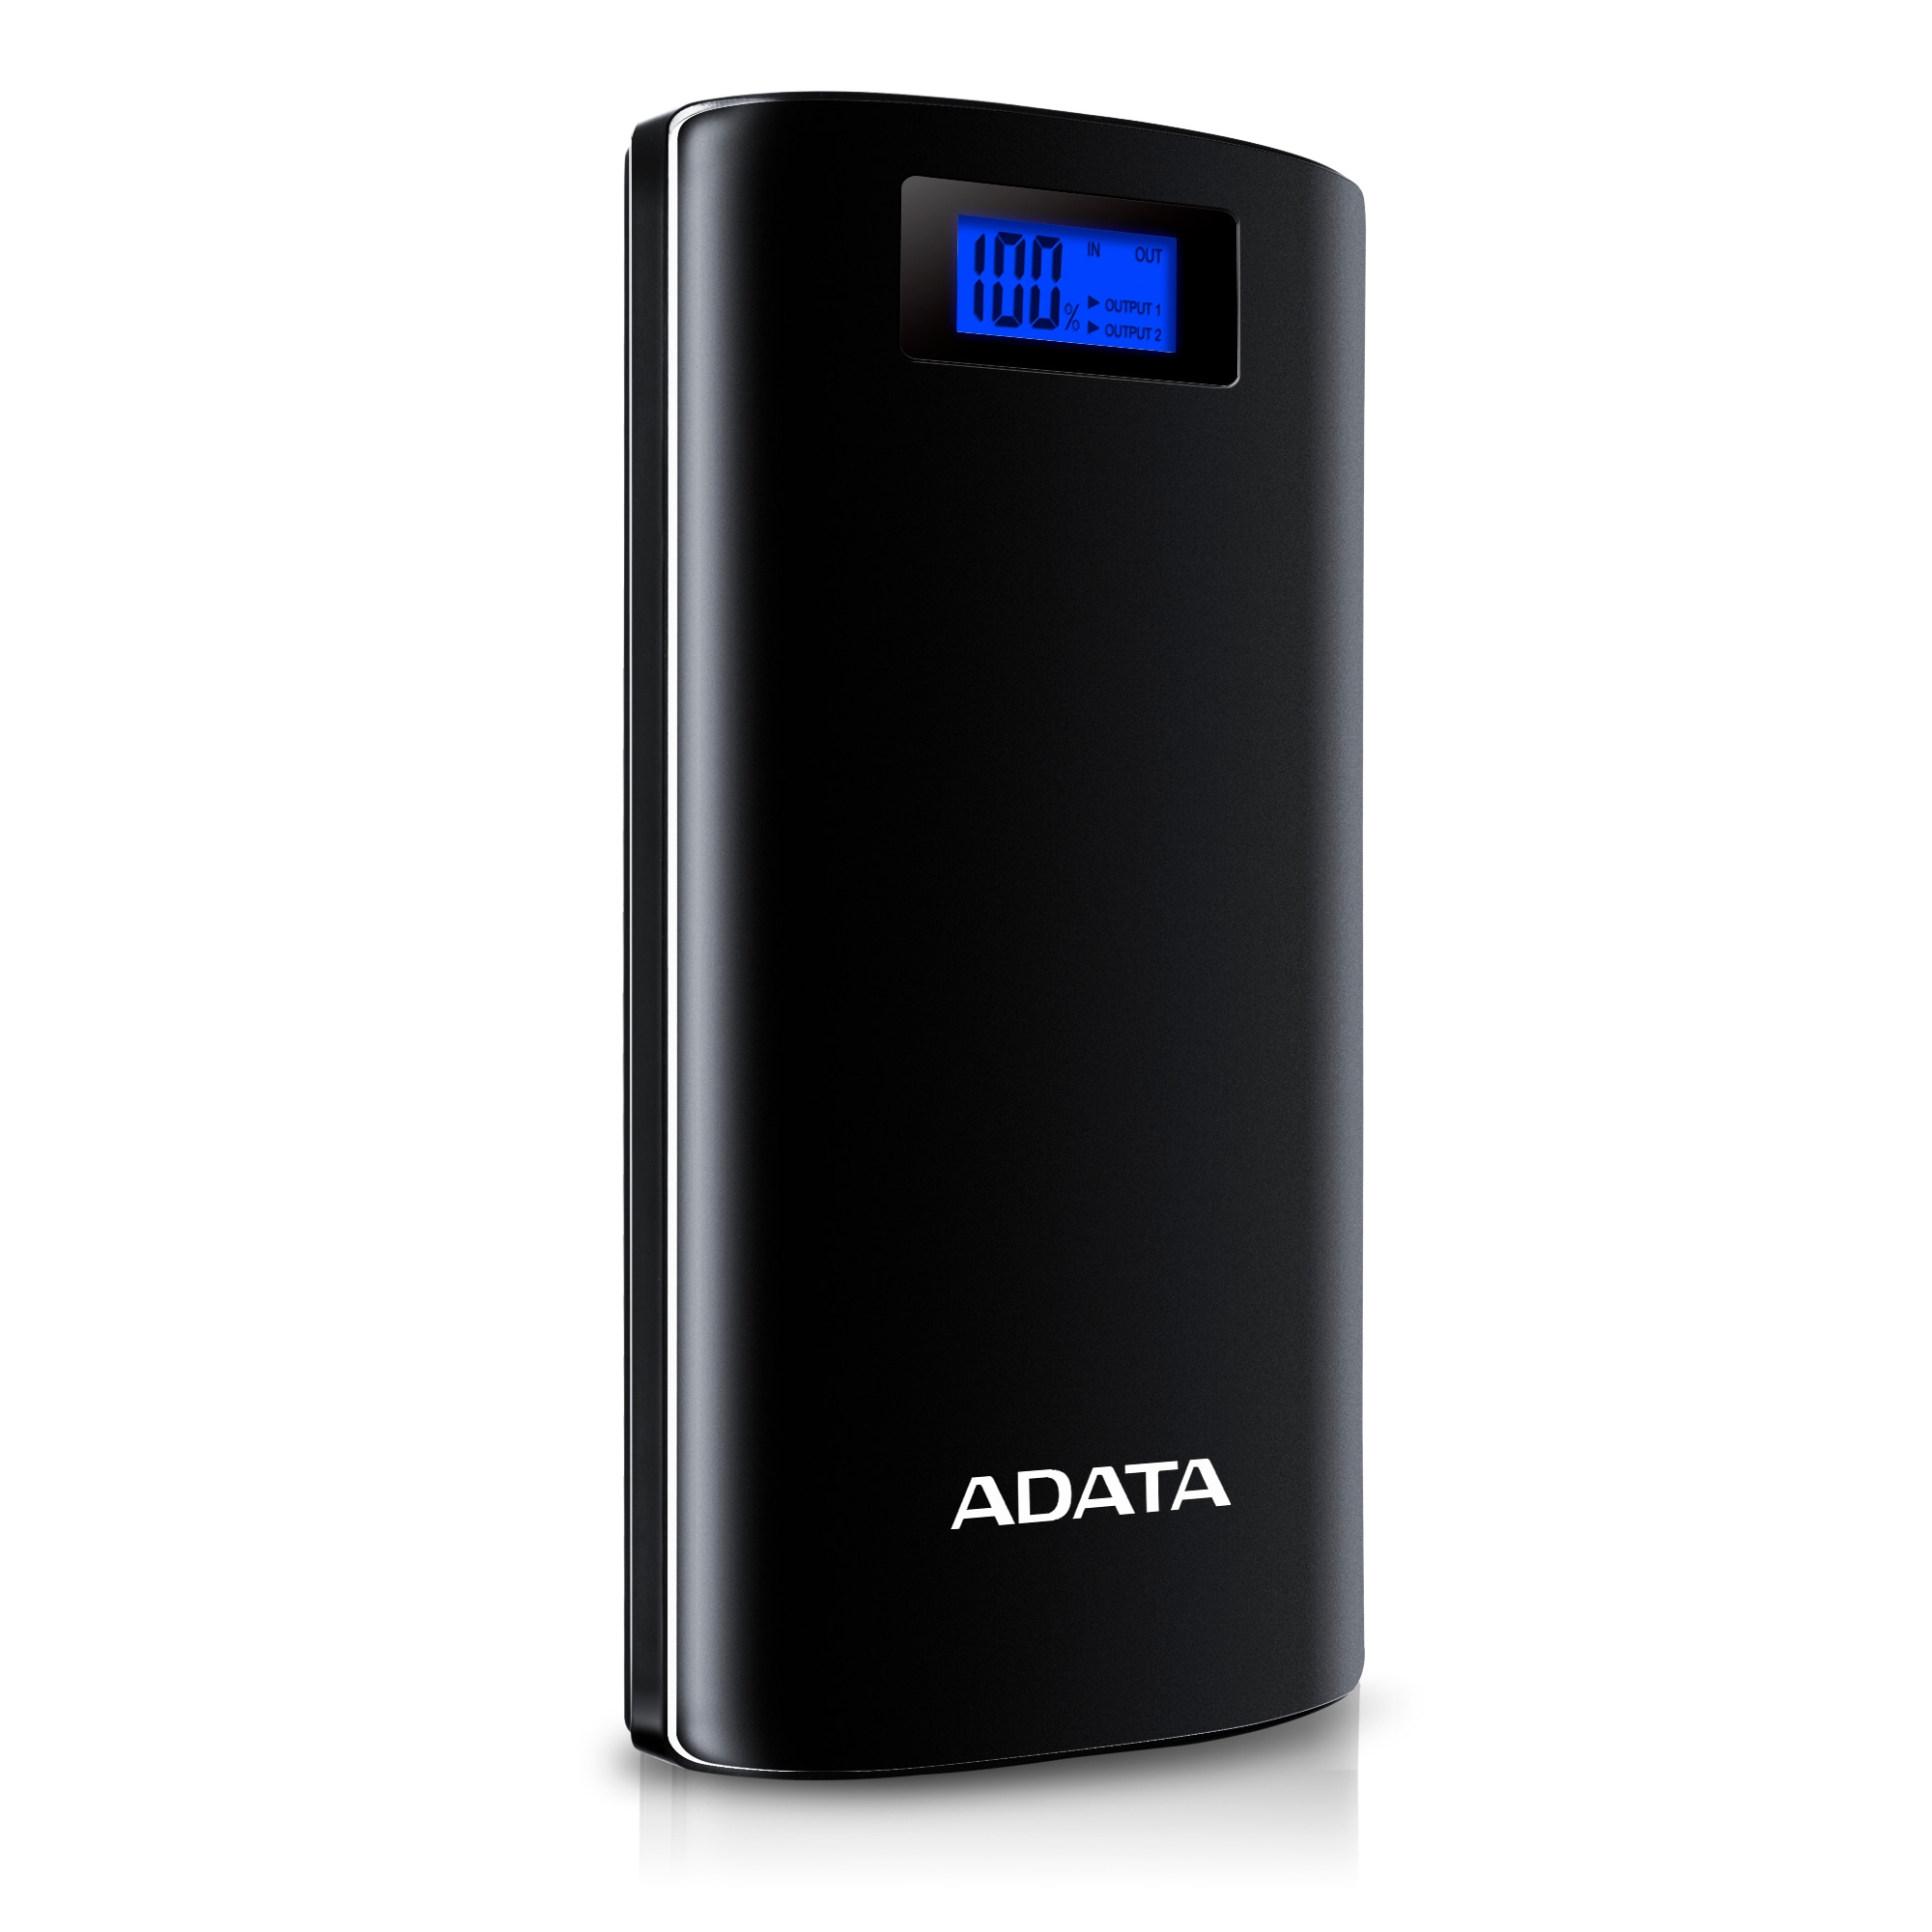 ADATA P20000D Power Bank